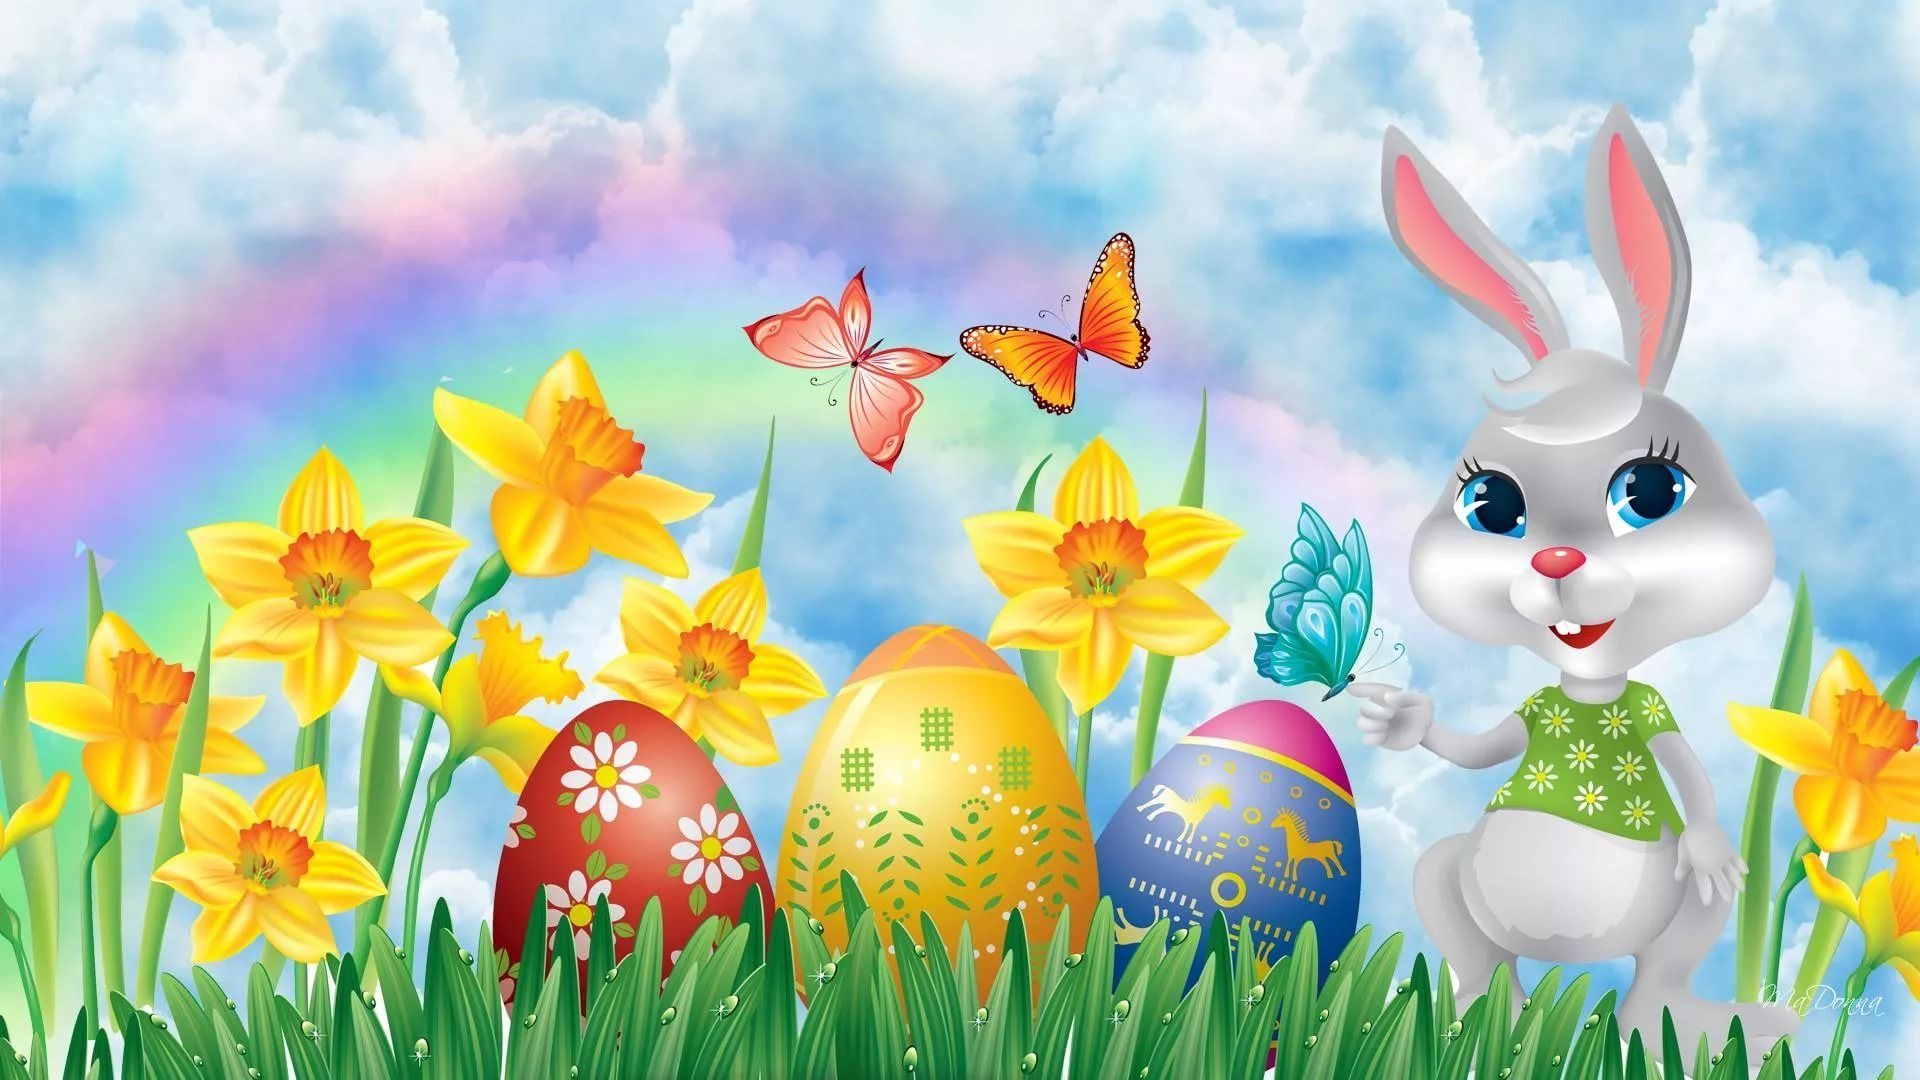 Happy Easter download wallpaper image